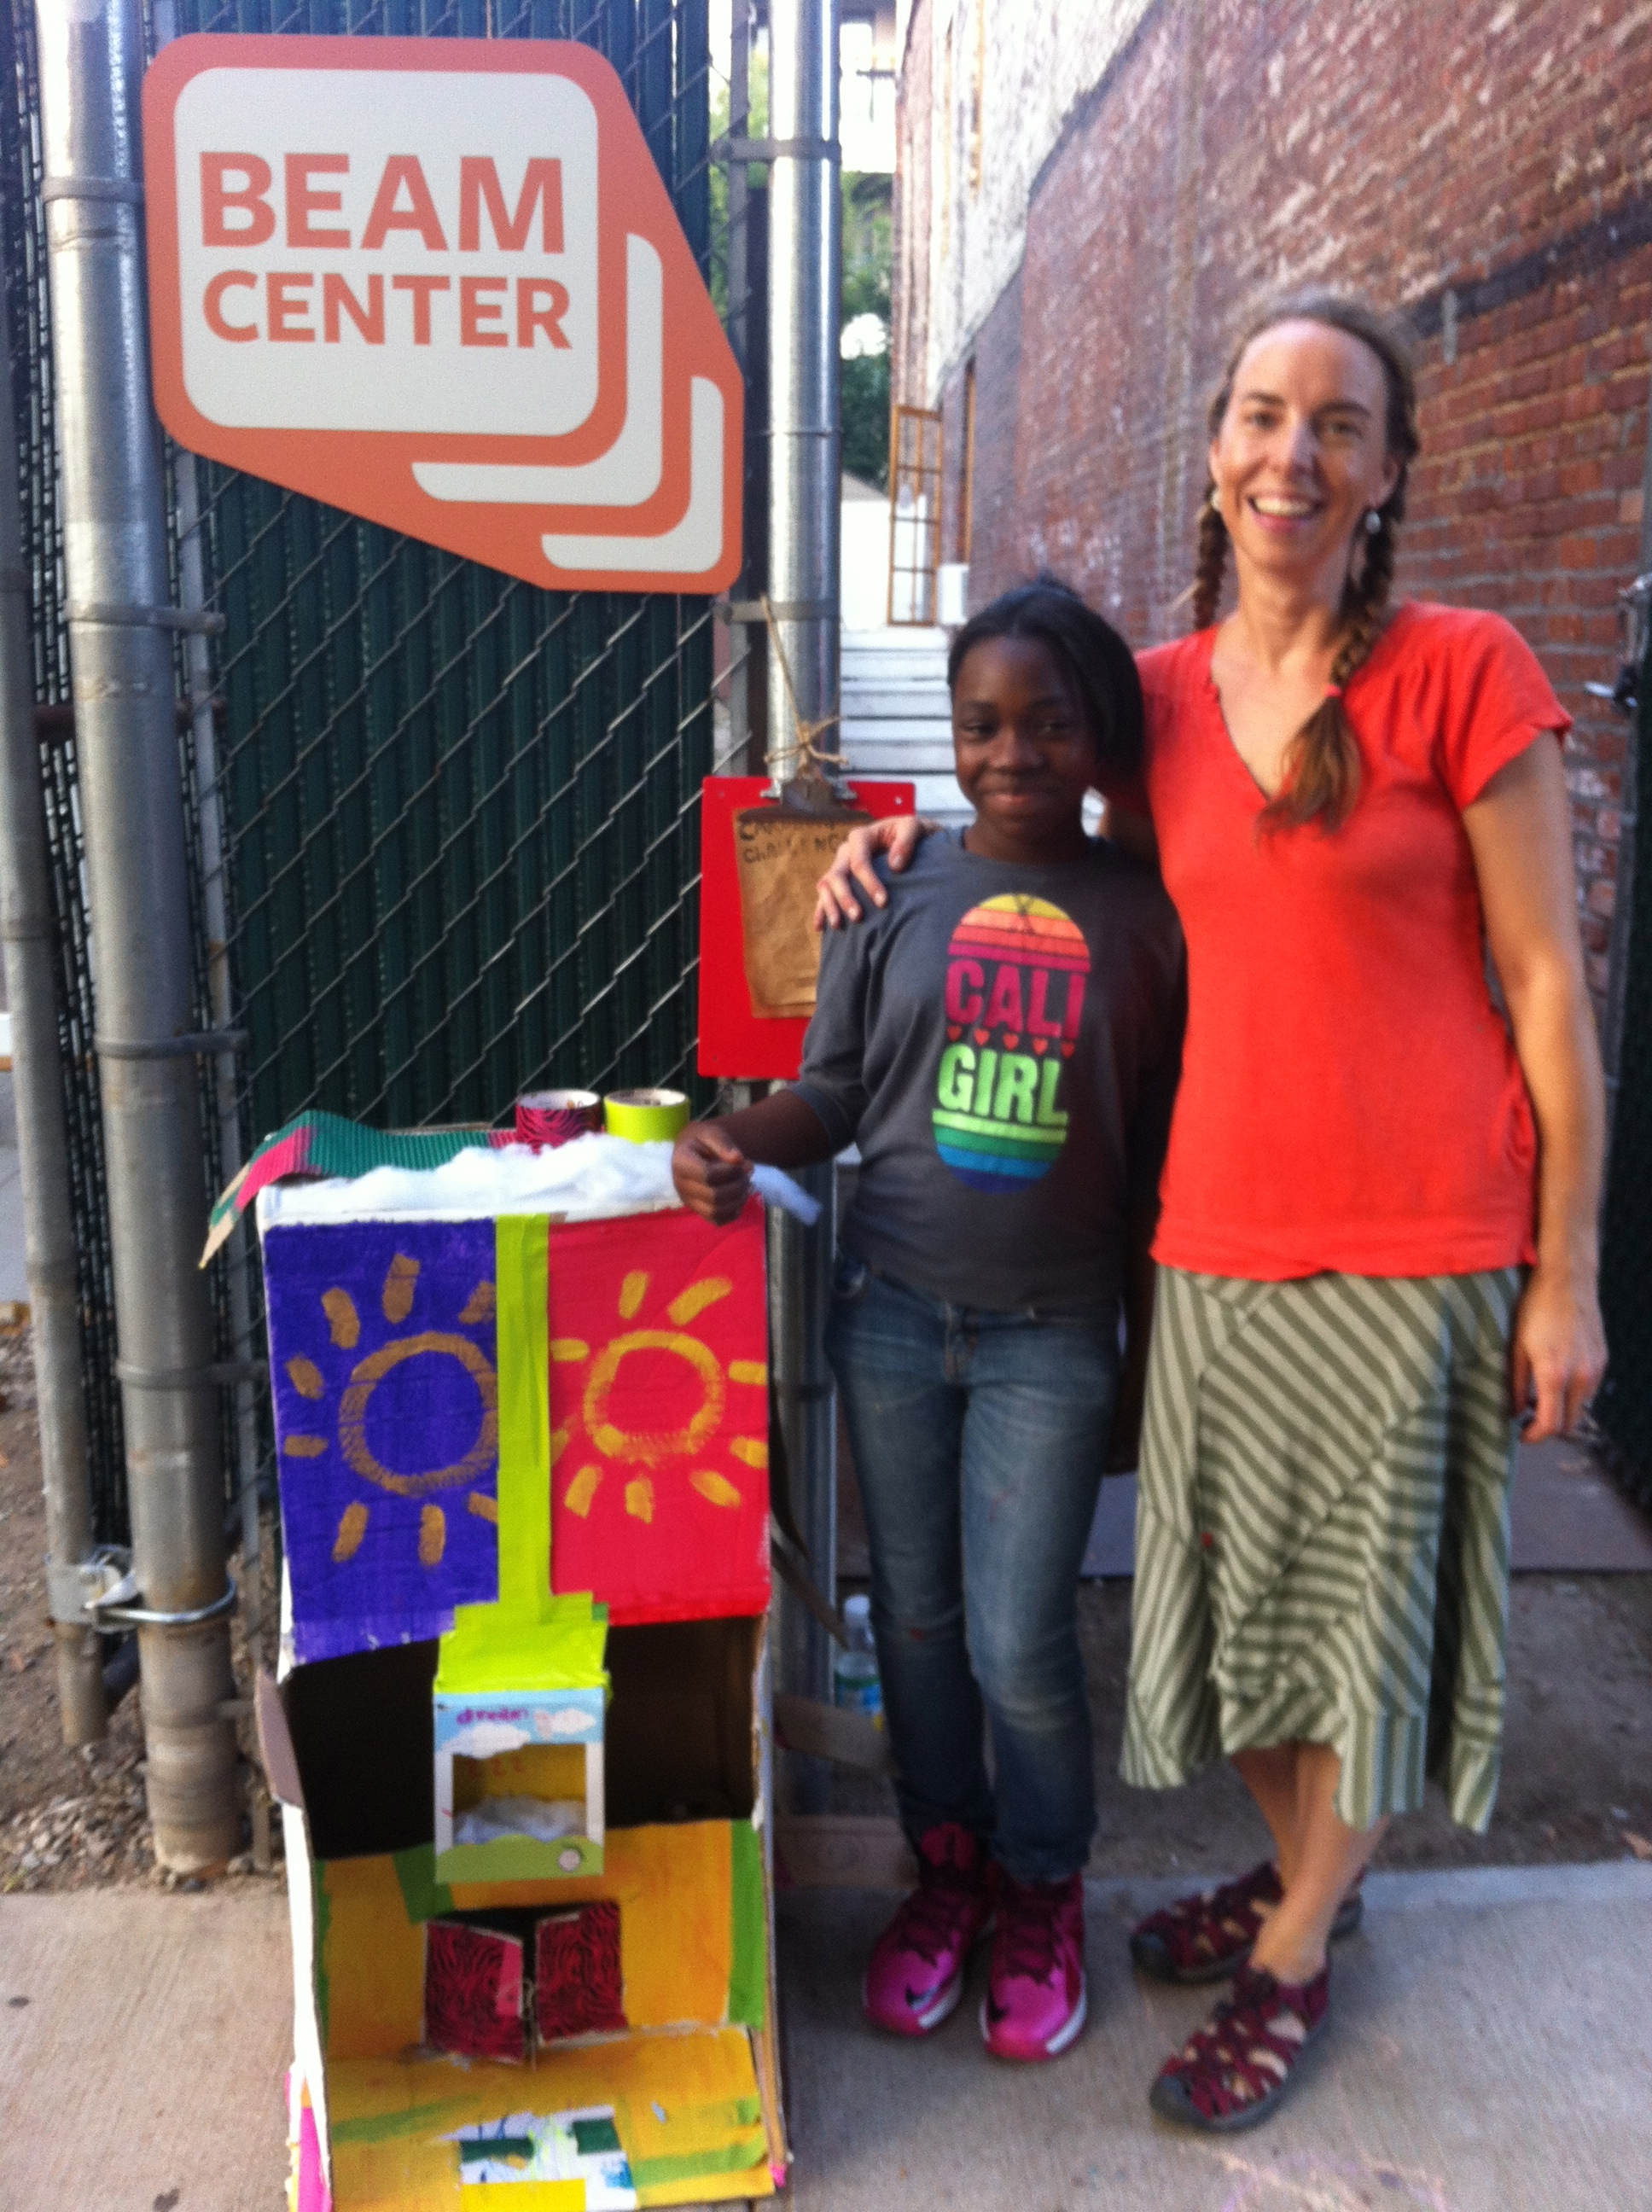 Heaven has grown up since   Spirit Ship  ! But is still a dreamer. Her house of dreams was such a sweet element created during the Cardboard Challenge. Heaven, now 11, worked so hard on it, and wanted to take it home.